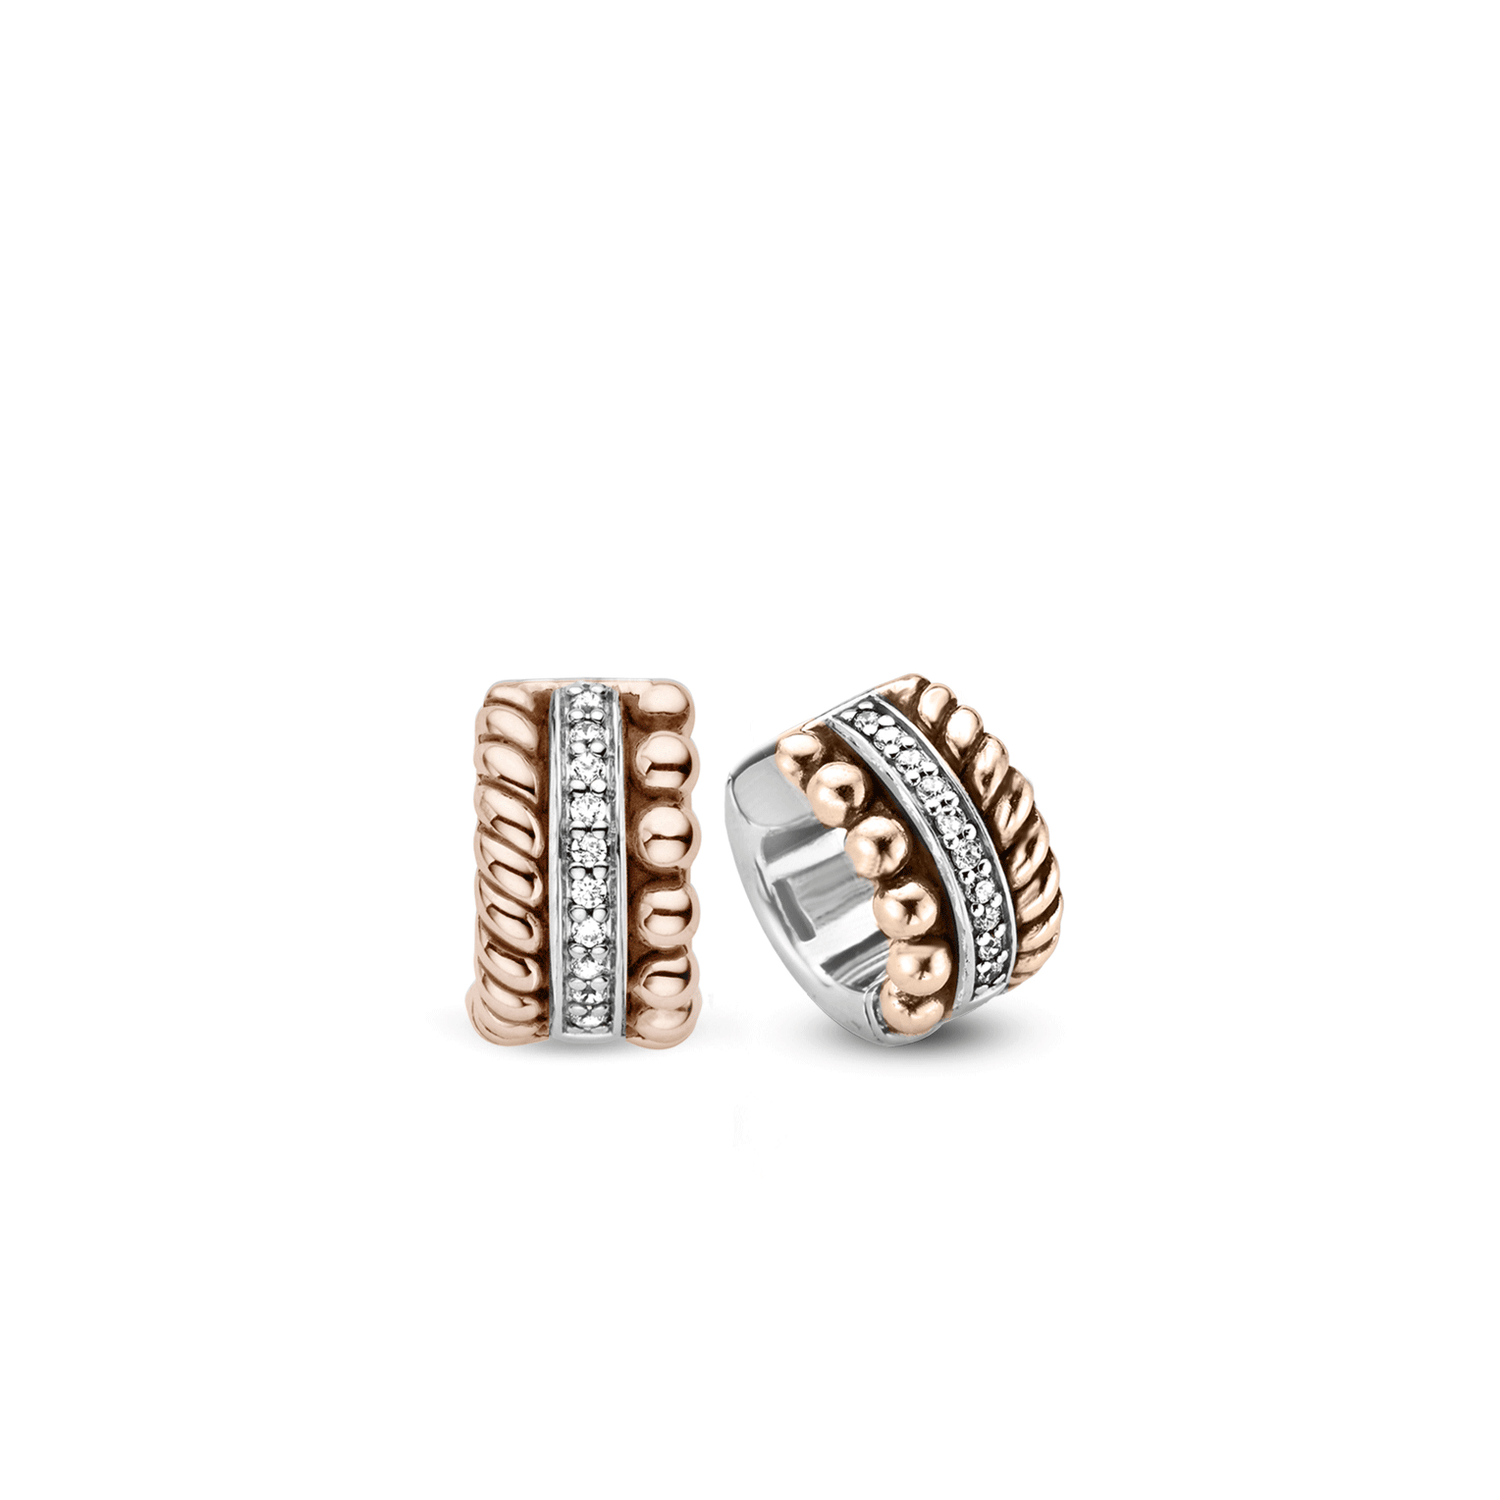 TI SENTO - Milano Earrings 7604ZR